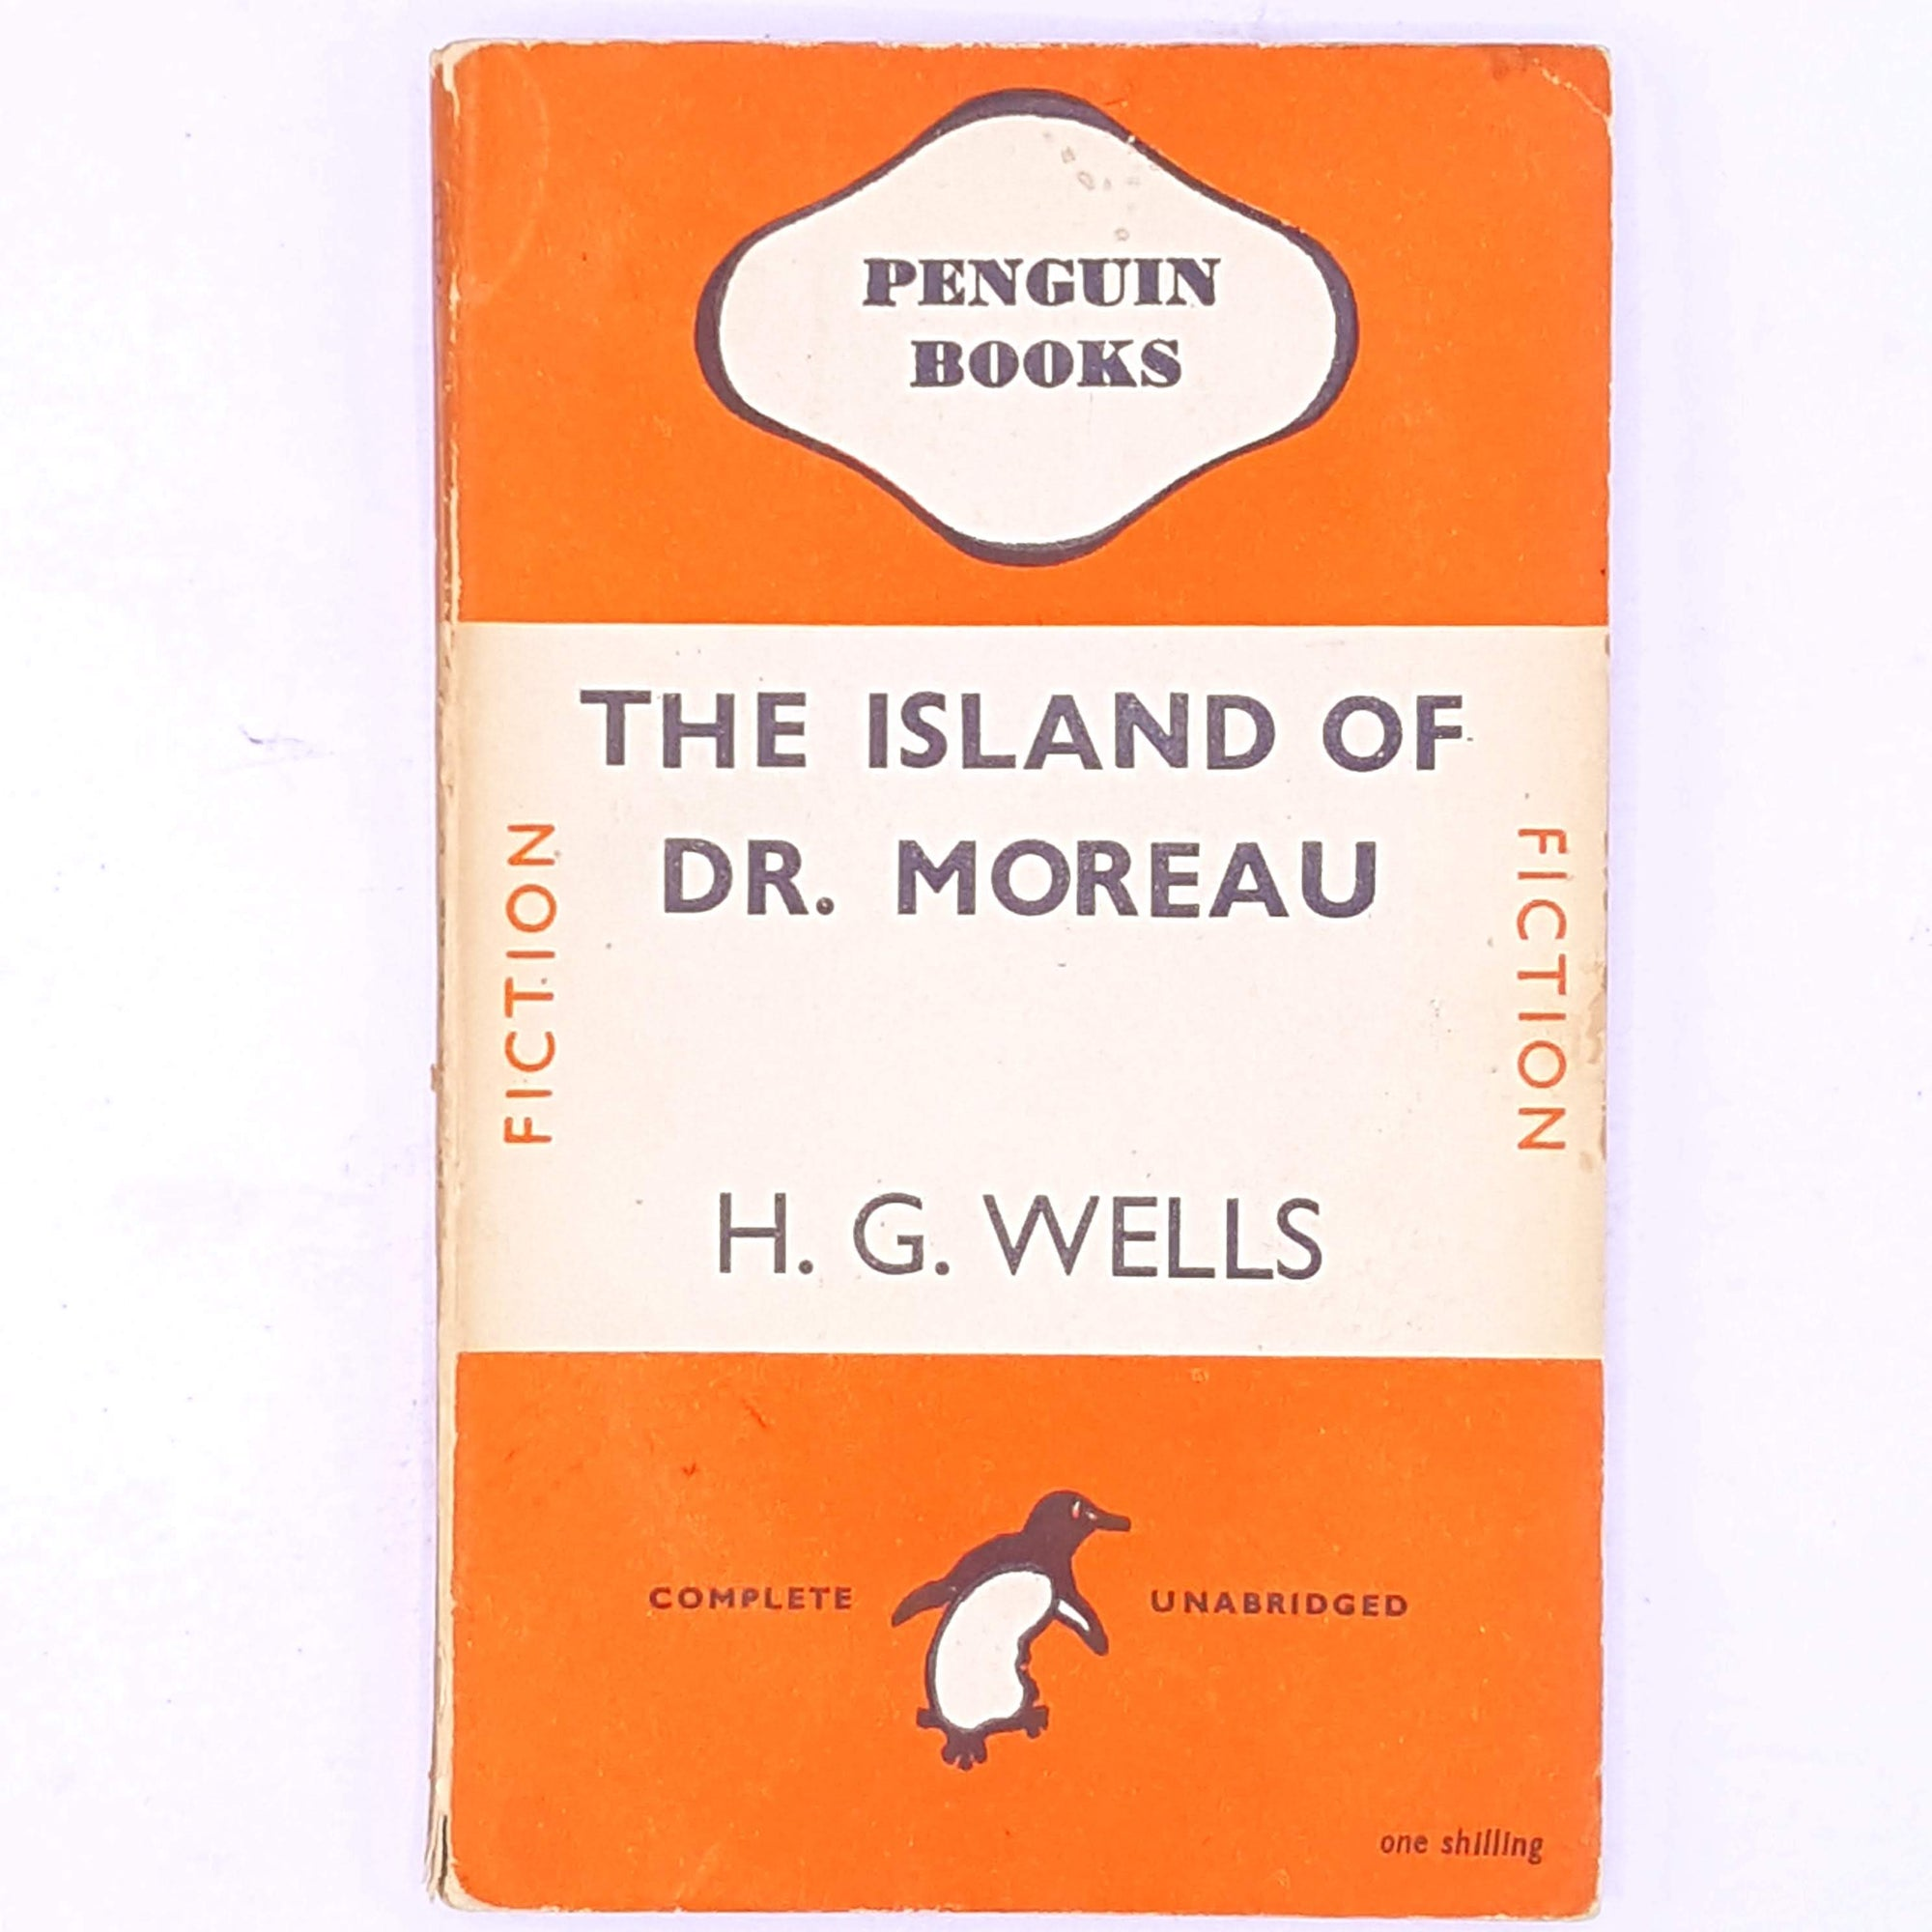 books-thrift-patterned-old-science-fiction-hg-wells-decorative-classic-fantasy- penguin-vintage-antique-the-island-of-dr-moreau-country-house-library-